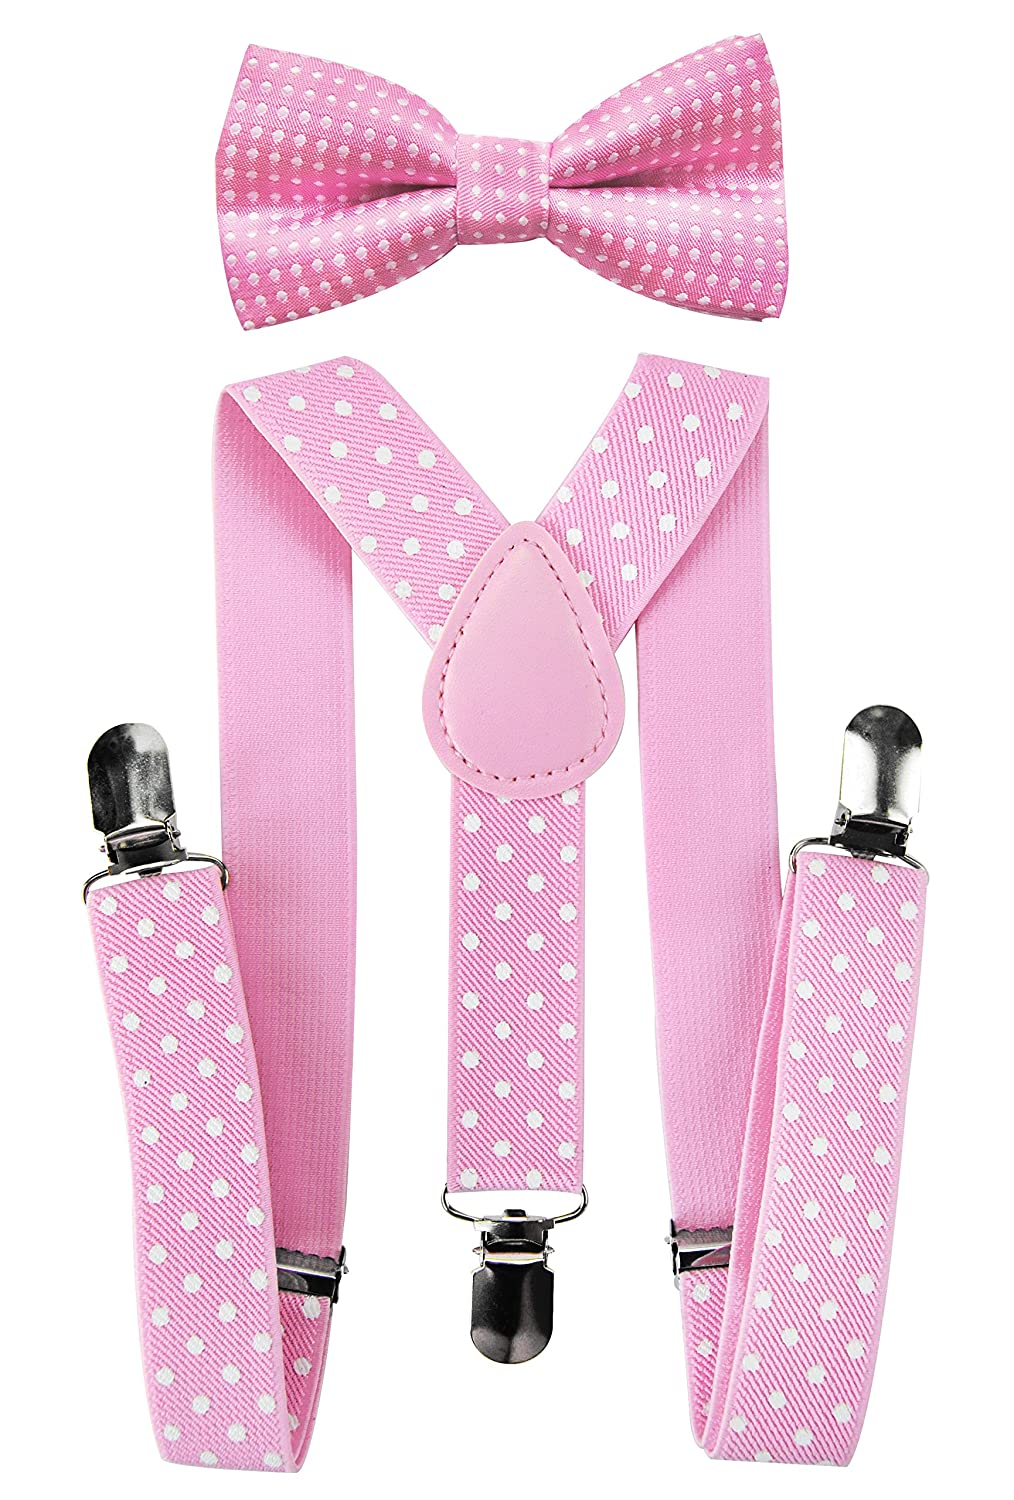 Axy High Quality Kids Trouser Braces Suspenders Y Shape with 3Fly Clips Extra Strong Plain Plain Colours Orange HTK25-1